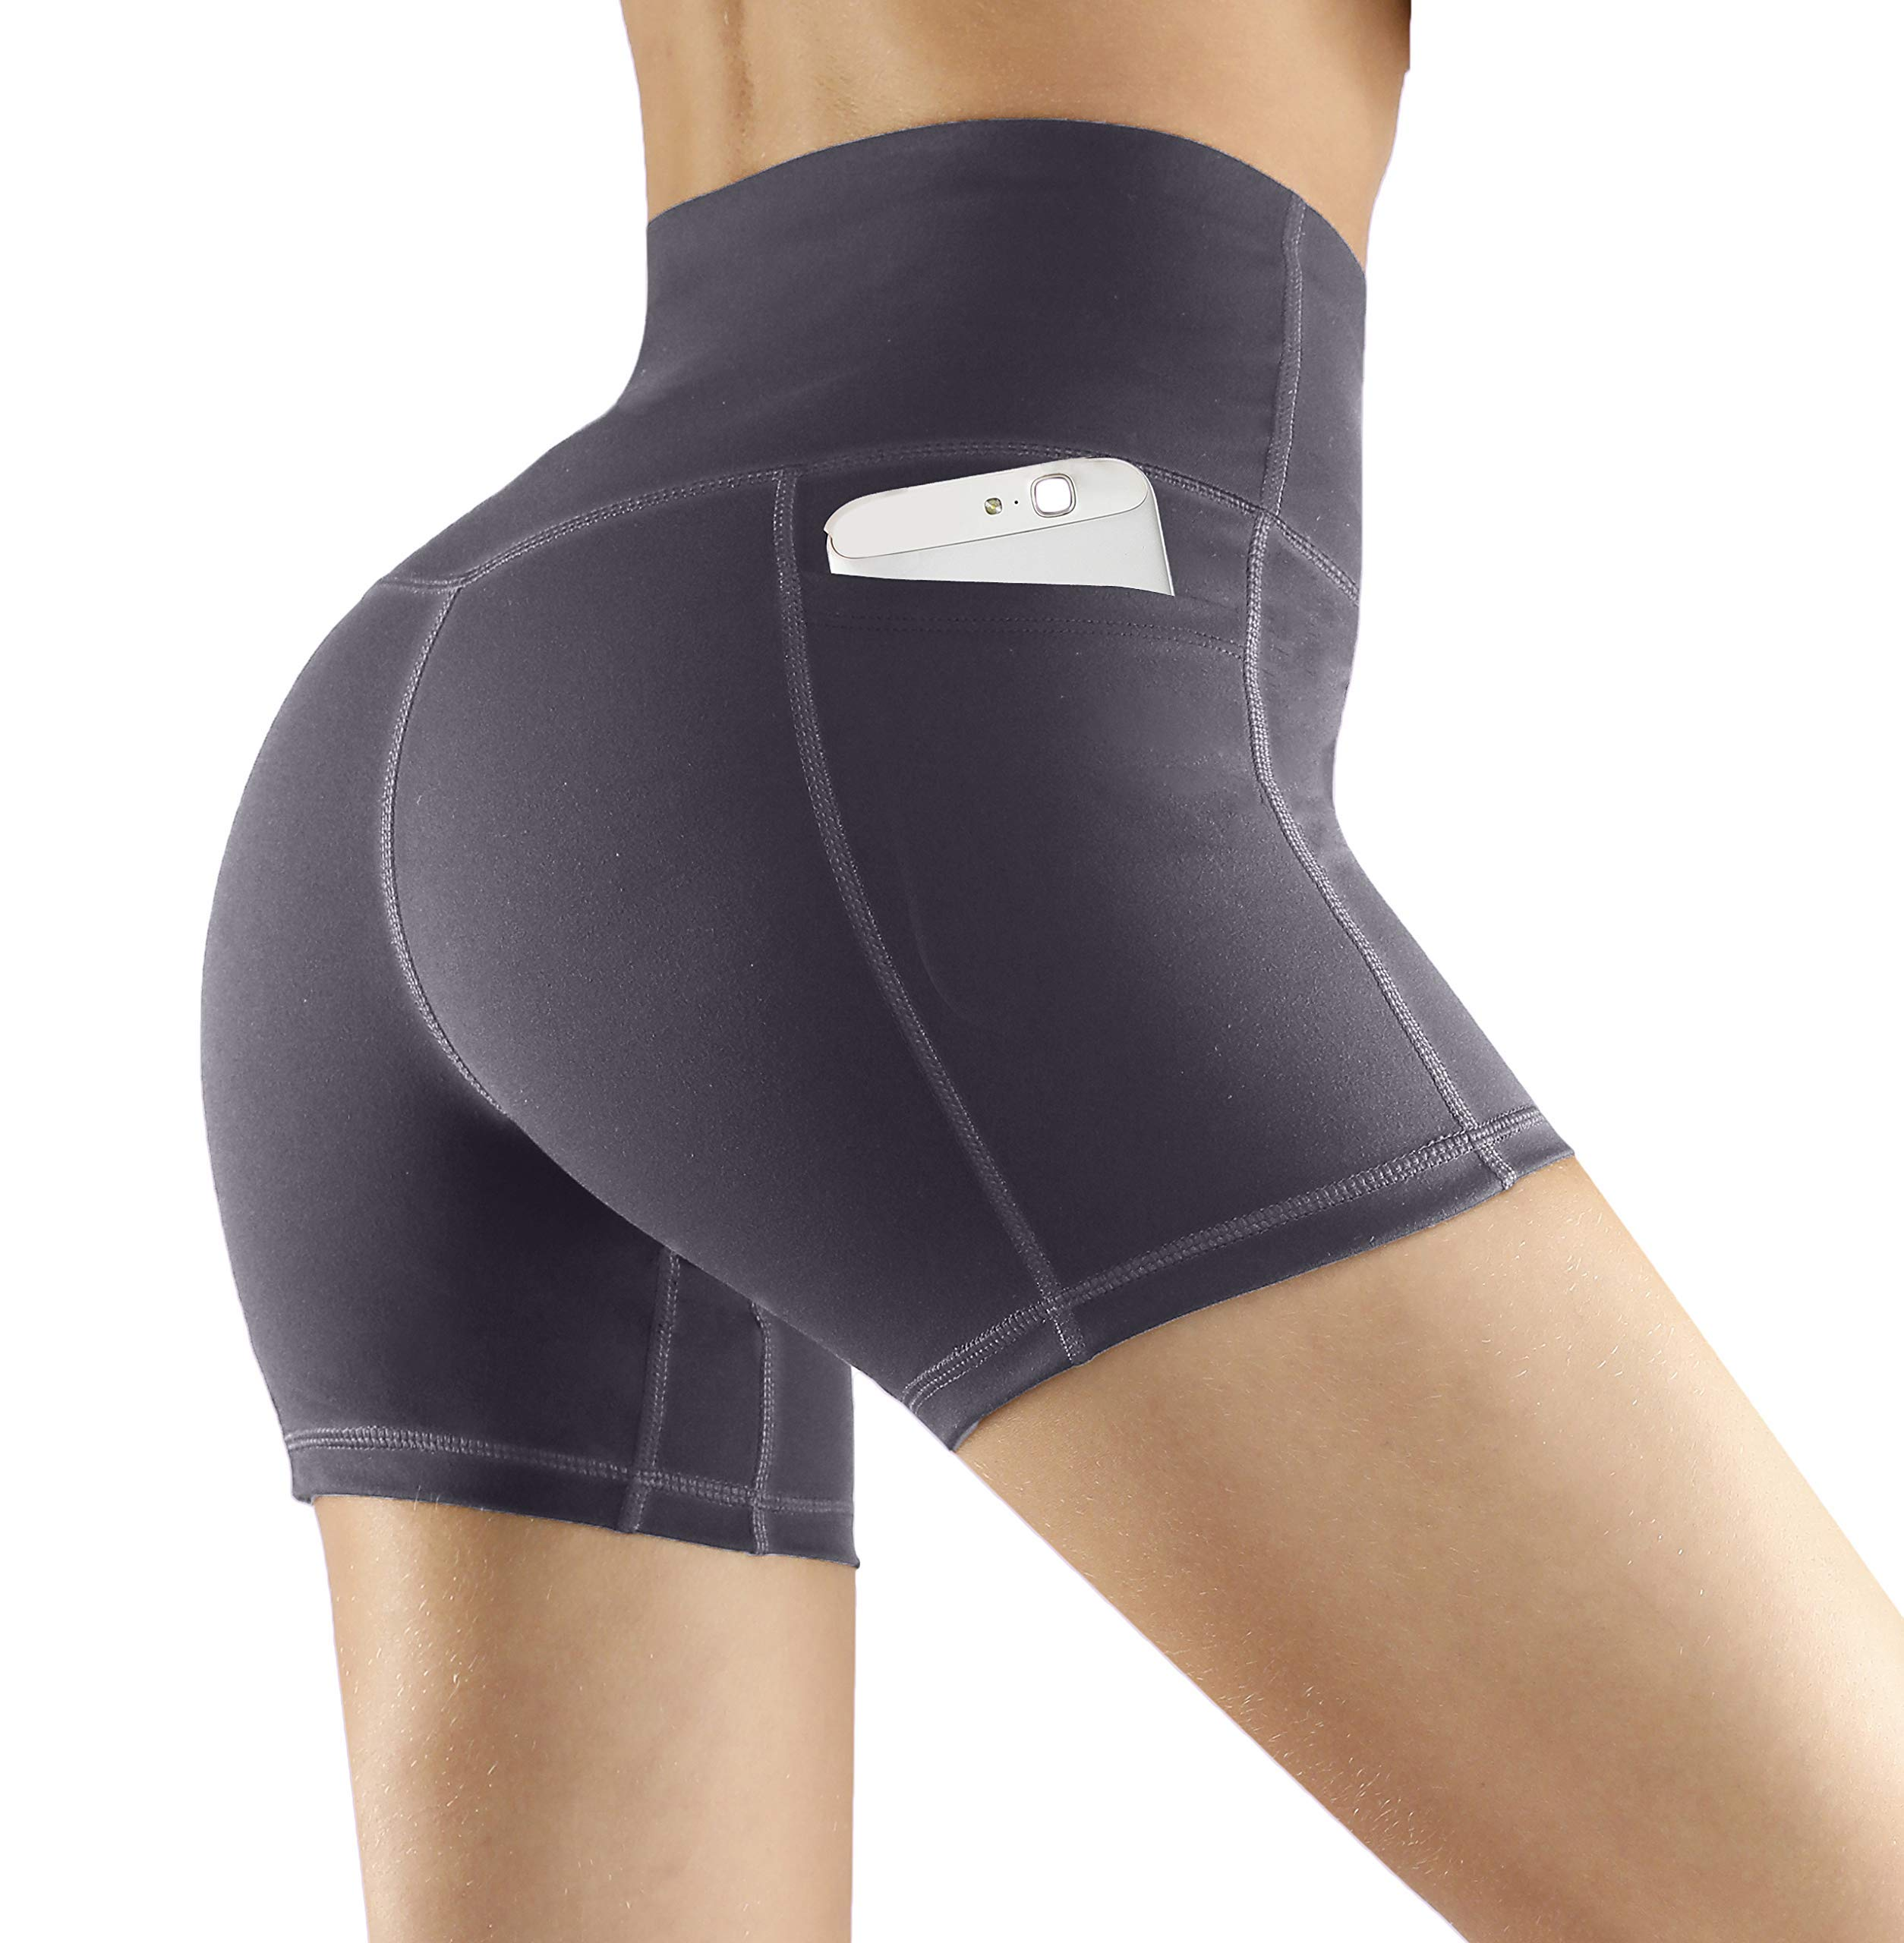 Fengbay High Waist Yoga Shorts, Workout Running Shorts with Side Pockets Tummy Control Compression Shorts for Women Grey by Fengbay